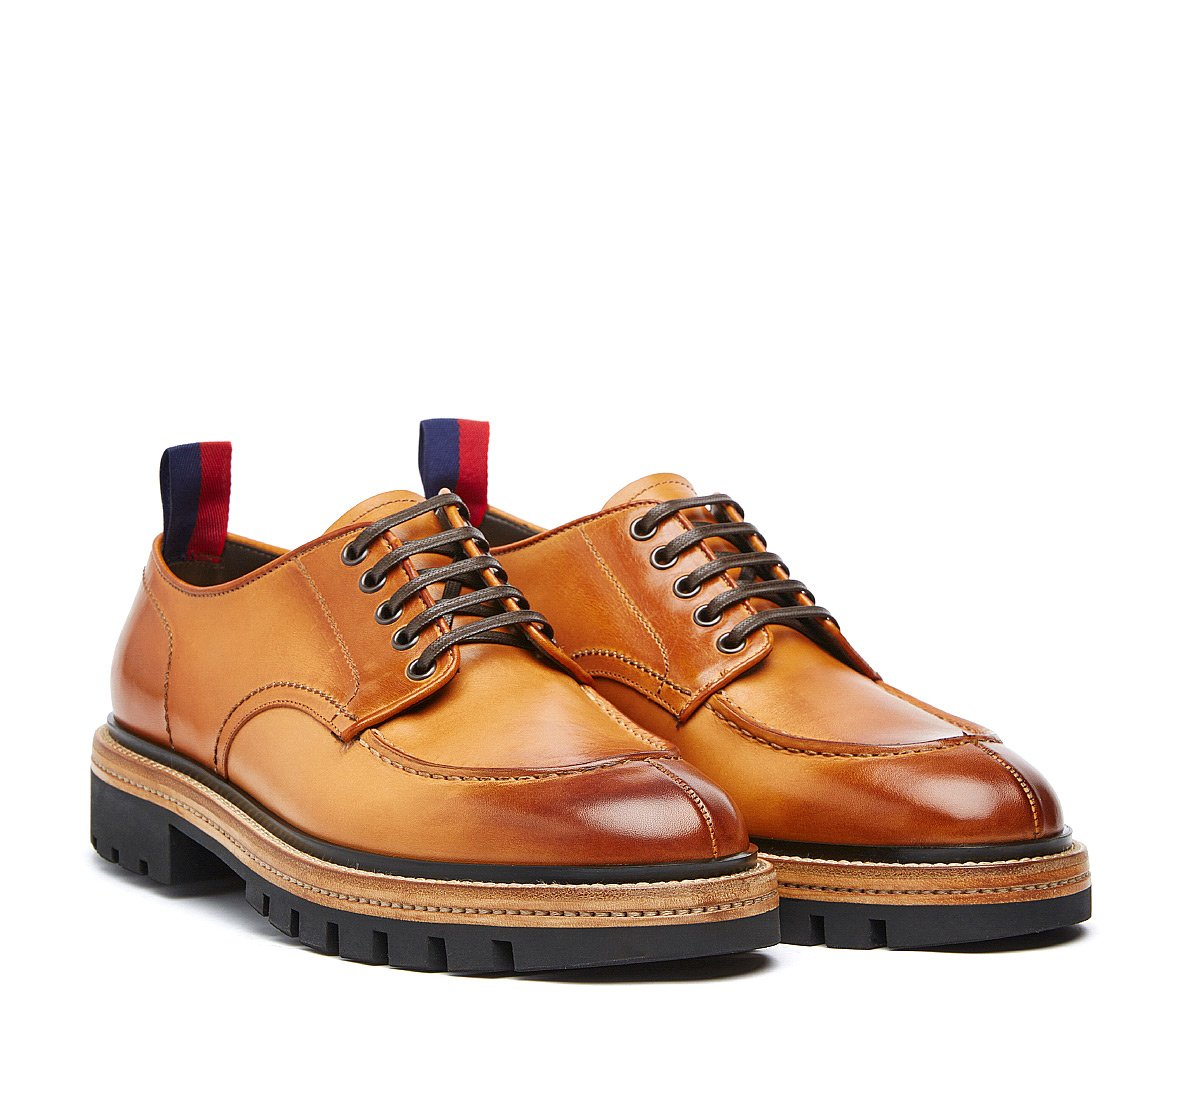 Barracuda lace-ups in fine calf leather